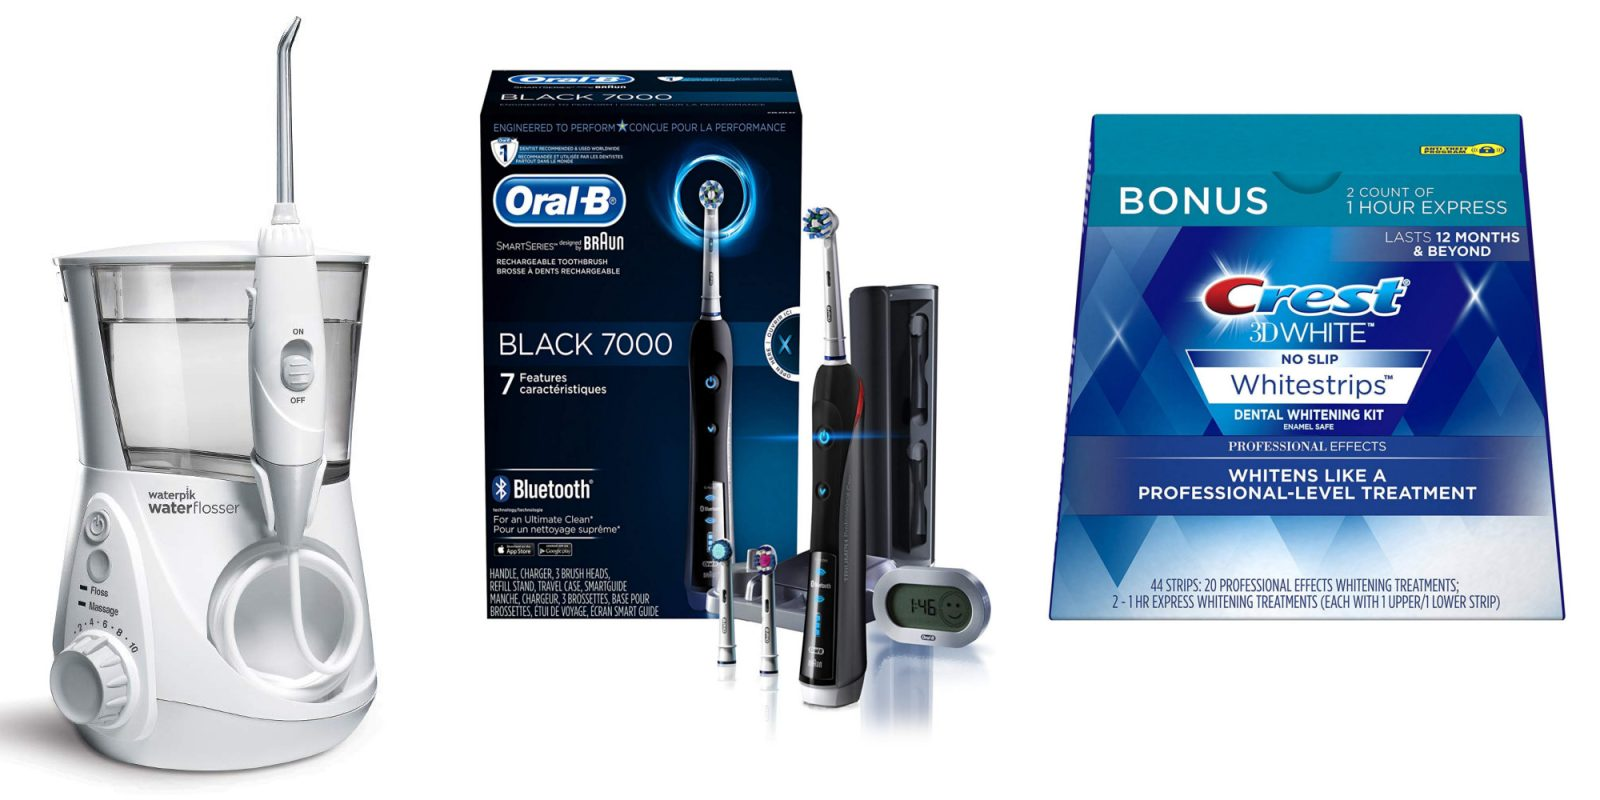 Oral-B and Sonicare from $20 for Prime Day: Toothbrushes, Whitestrips, more